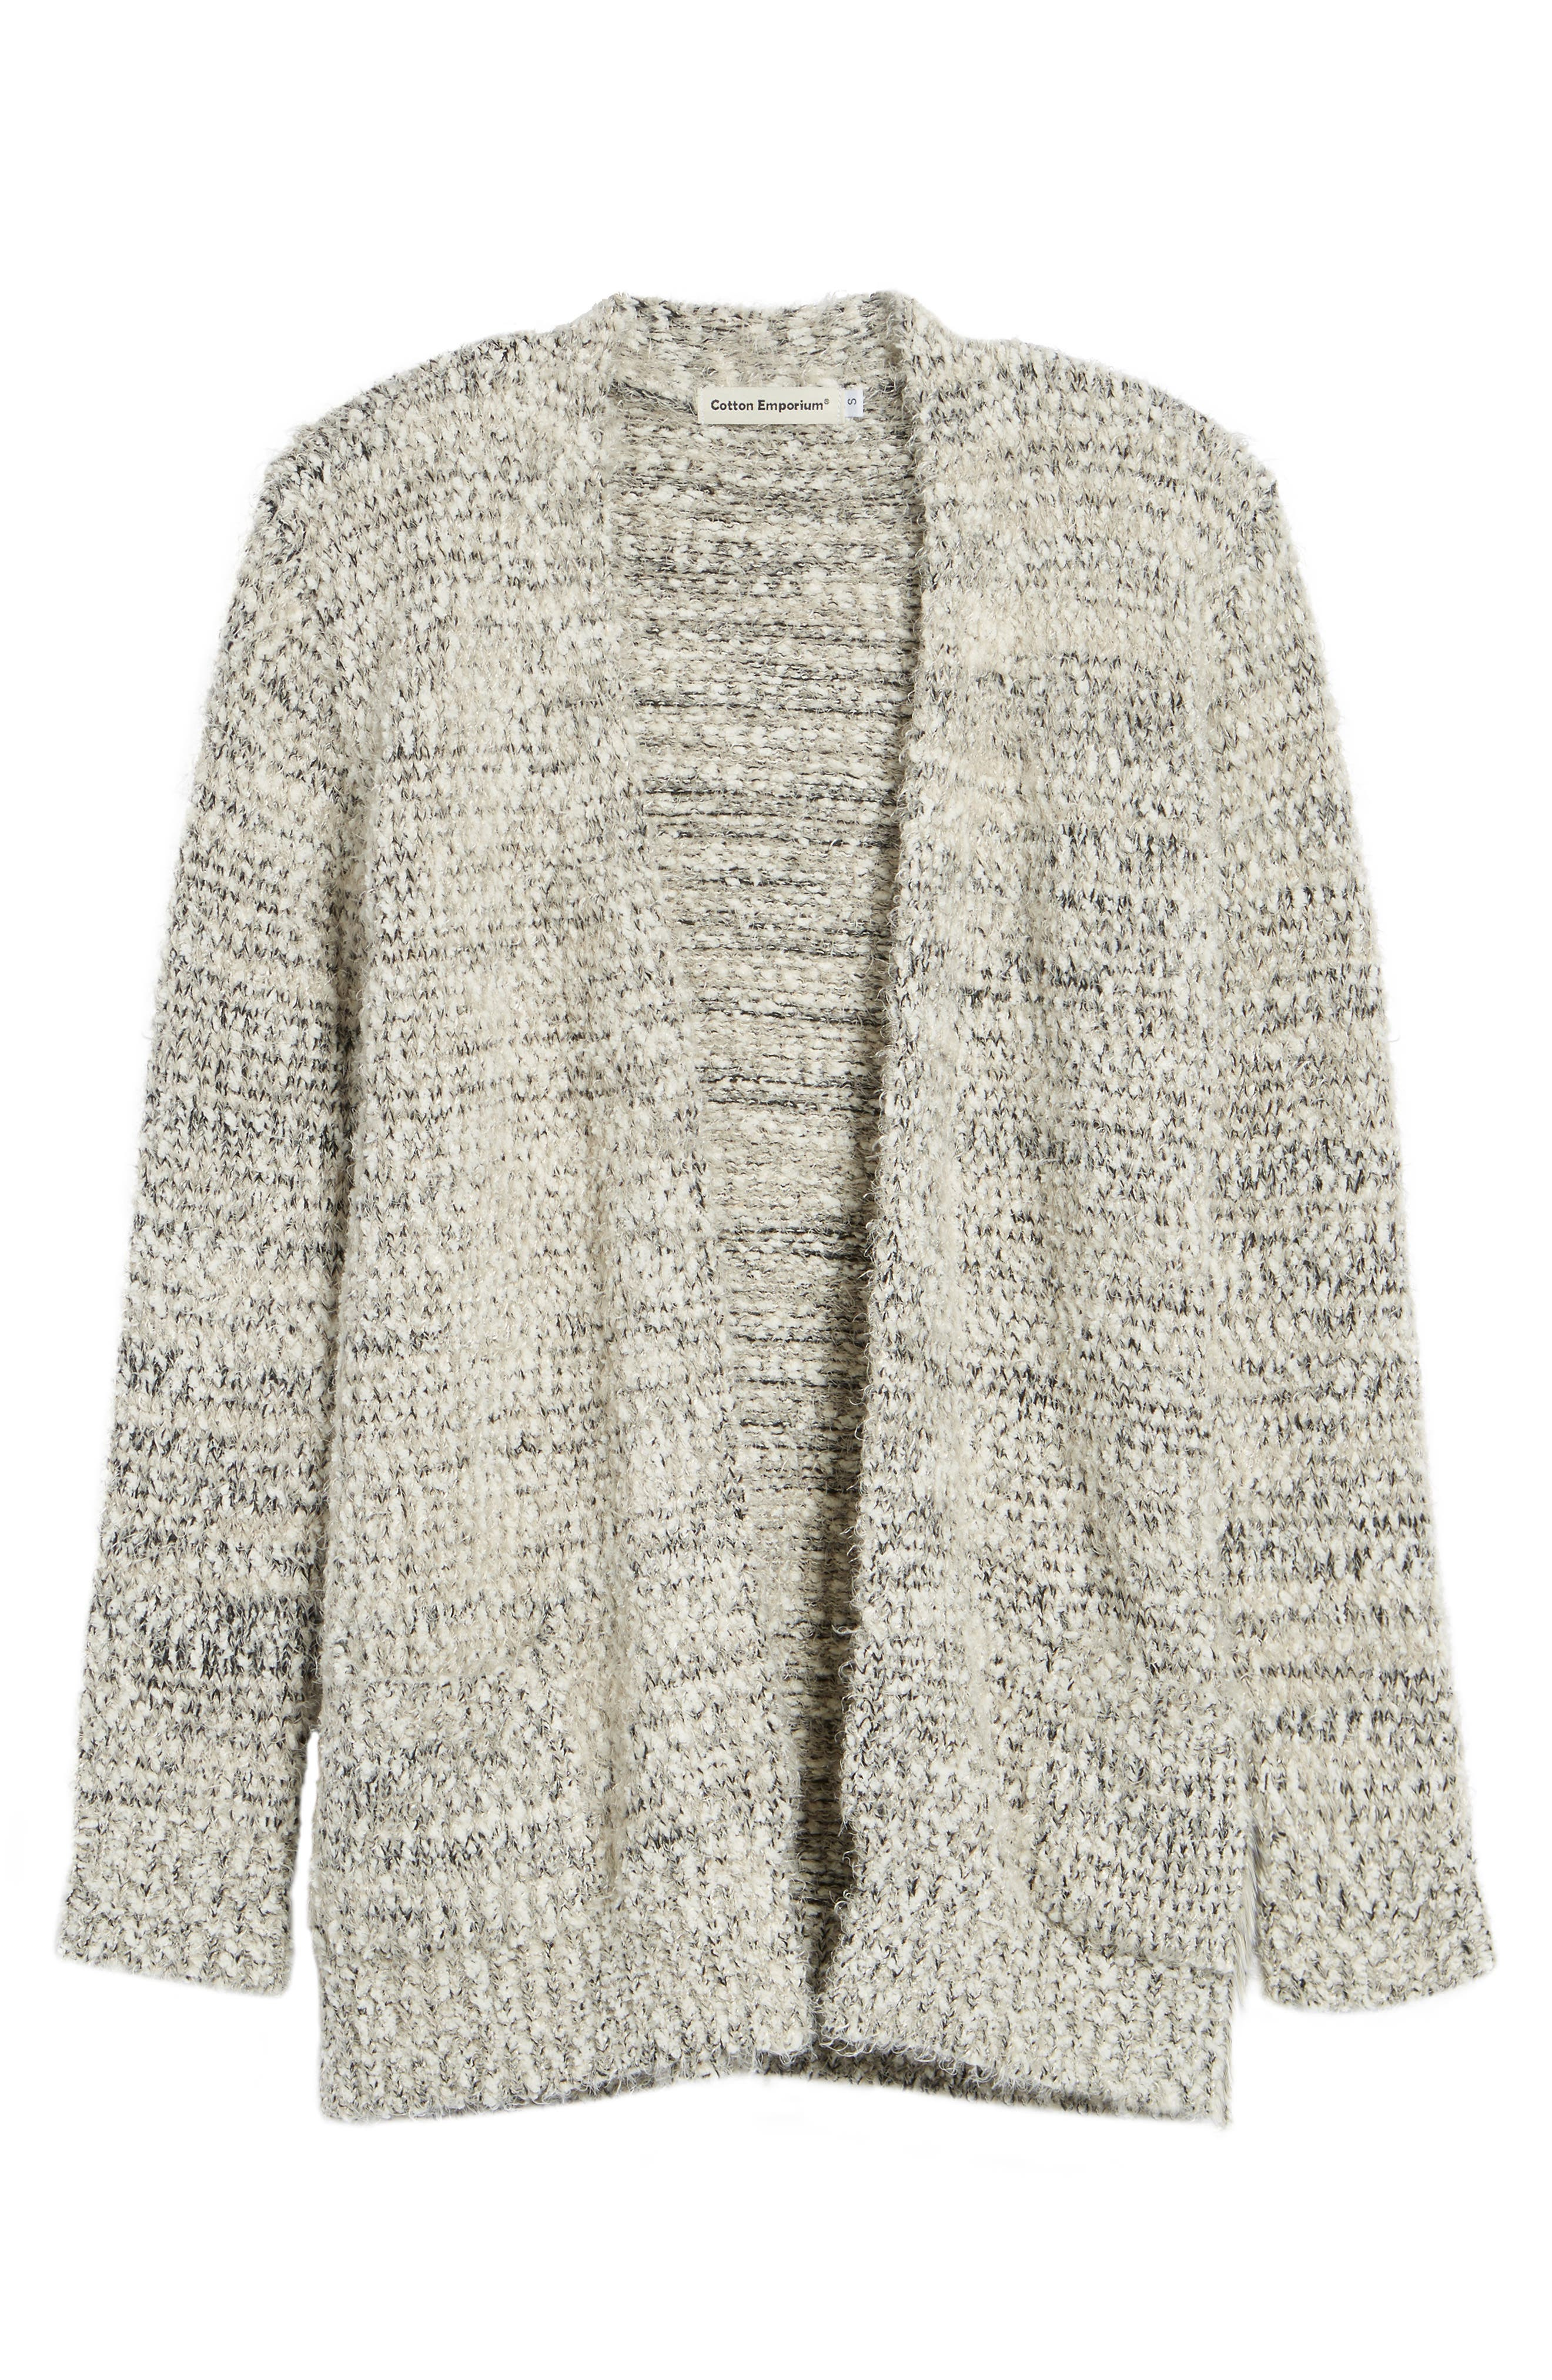 Marled Cardigan,                             Alternate thumbnail 6, color,                             281